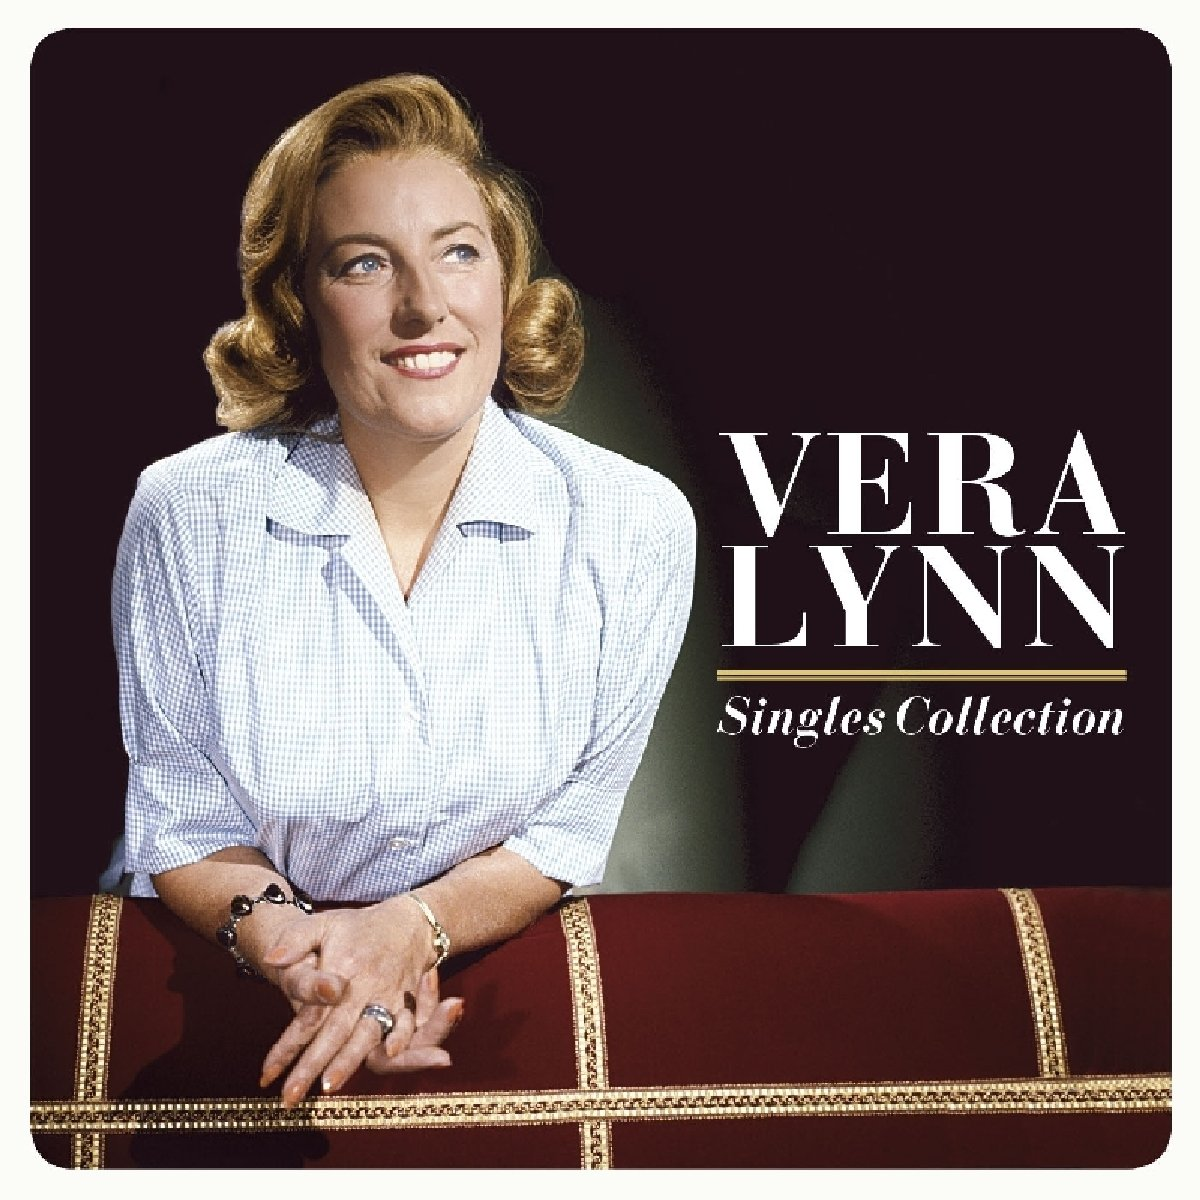 Vera Lynn - Singles Collection (2007) [FLAC] Download